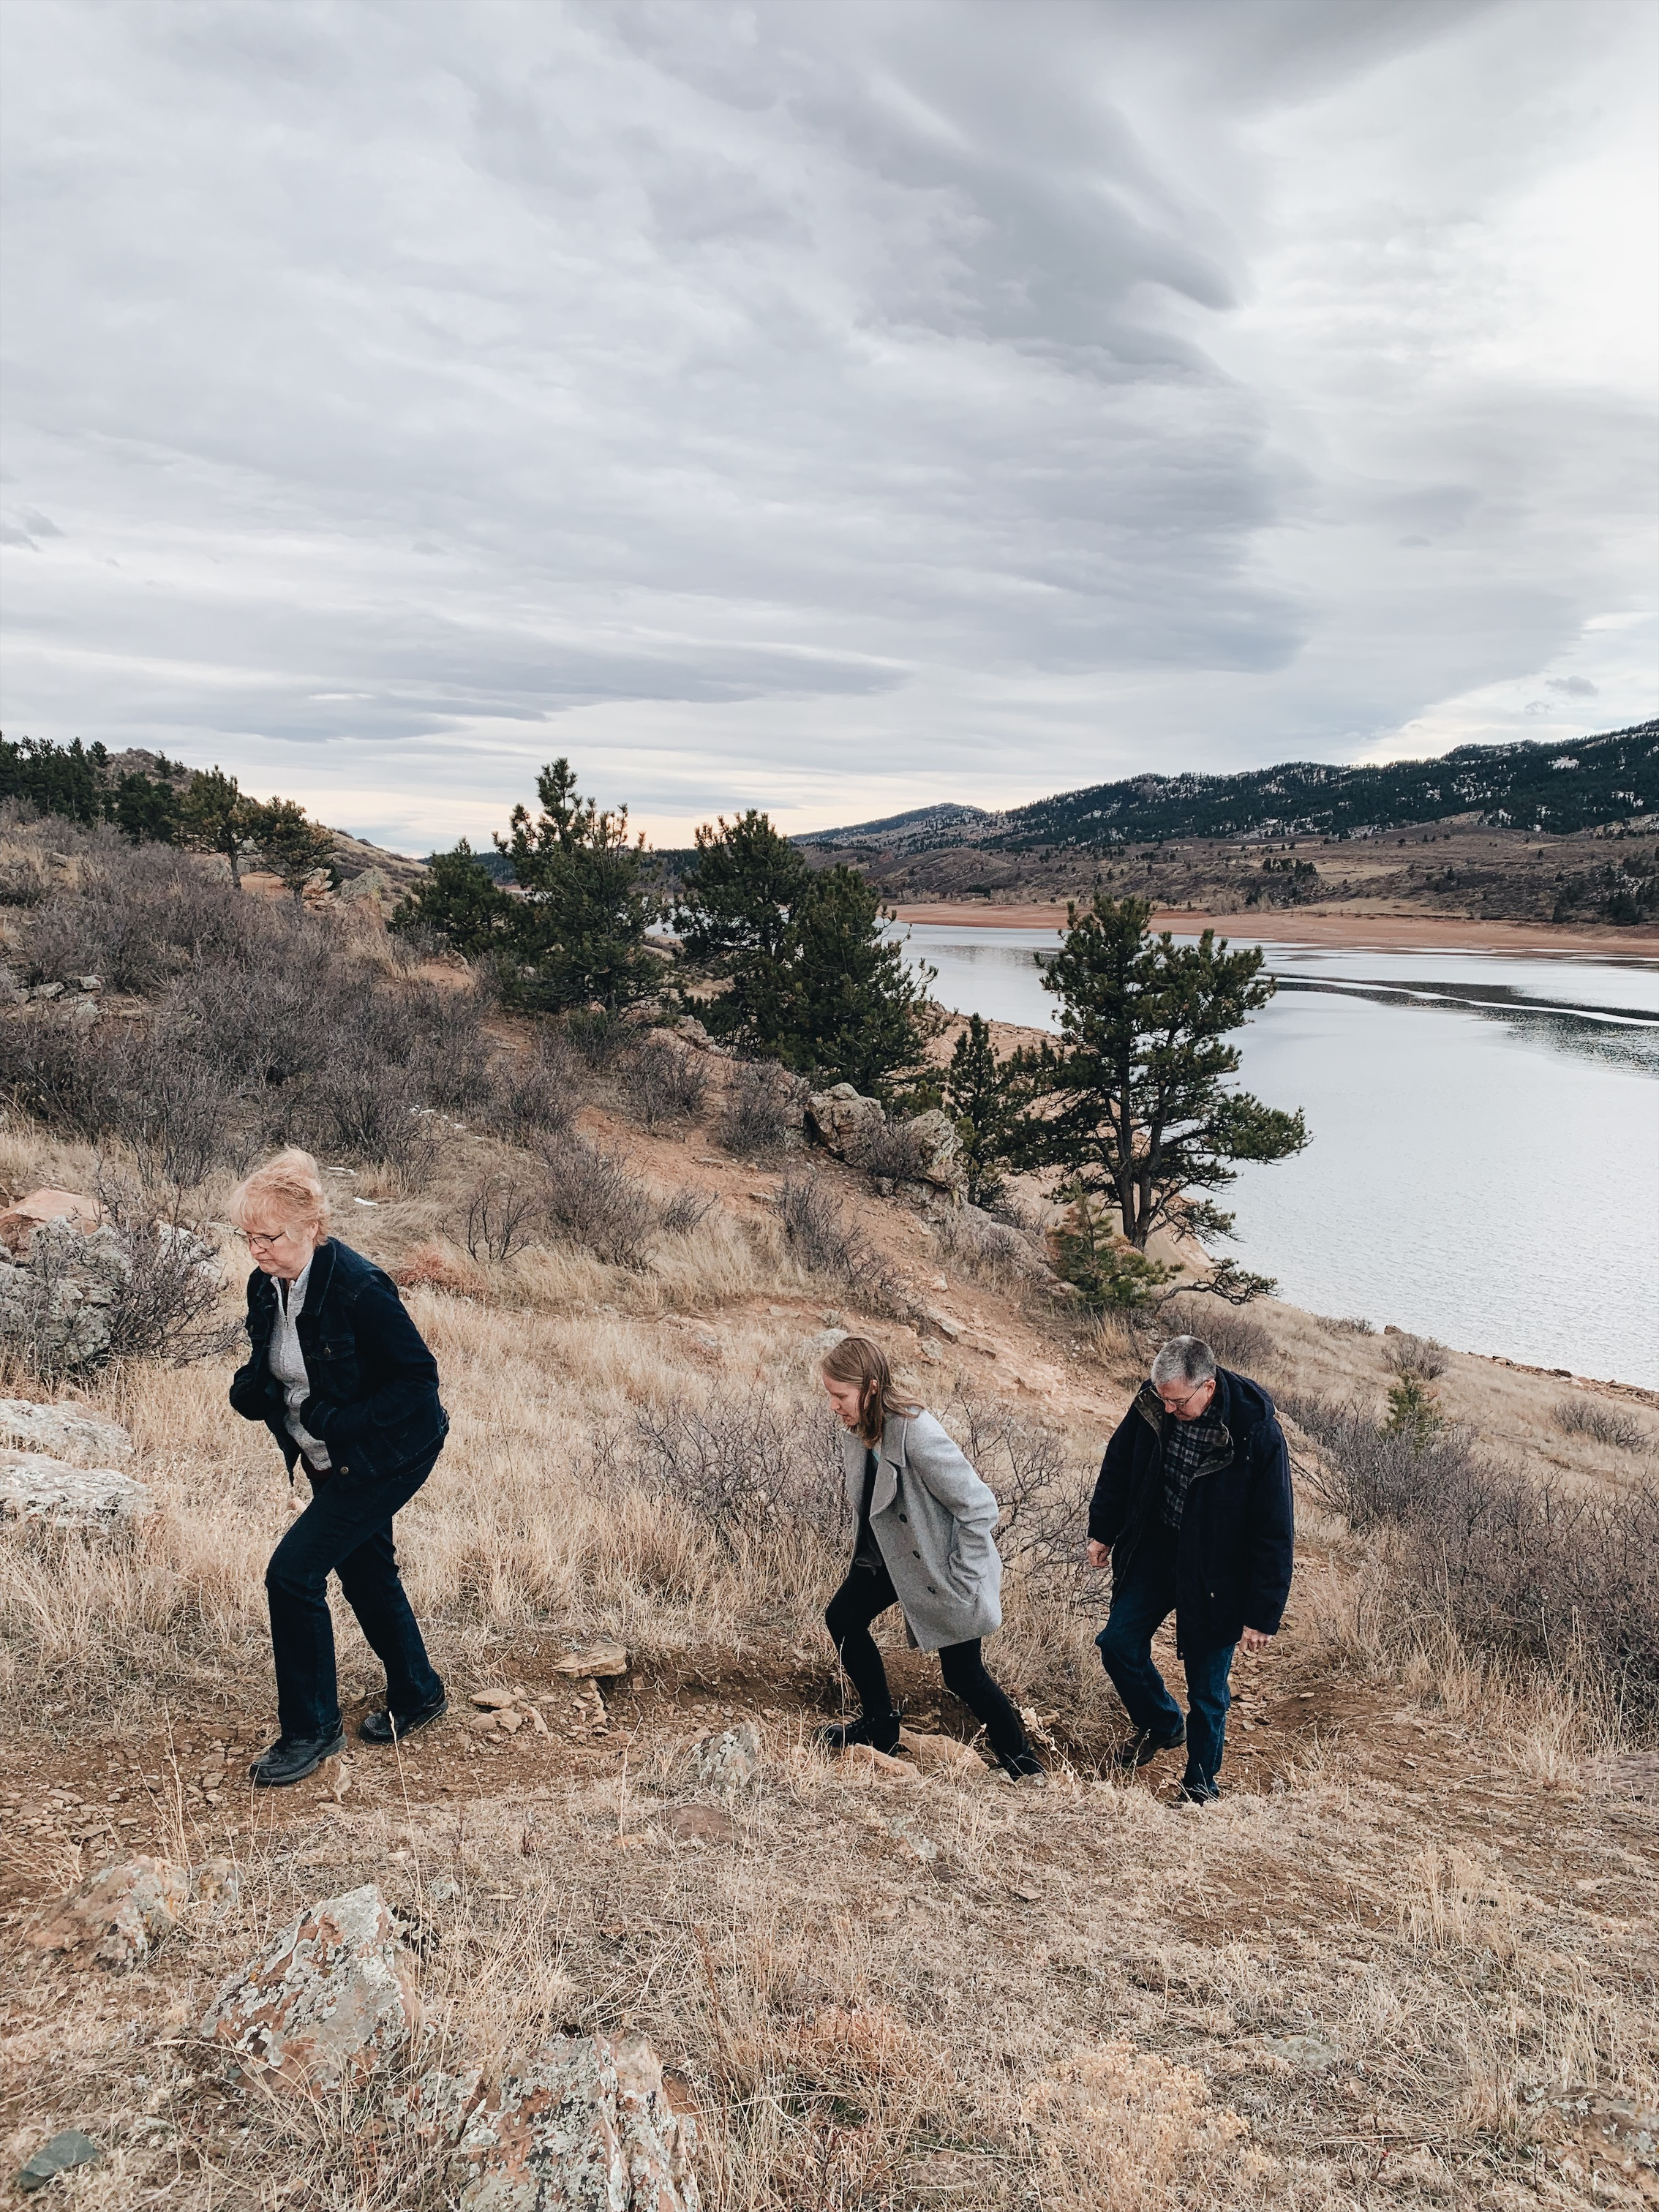 fort collins easy hikes to do as a family